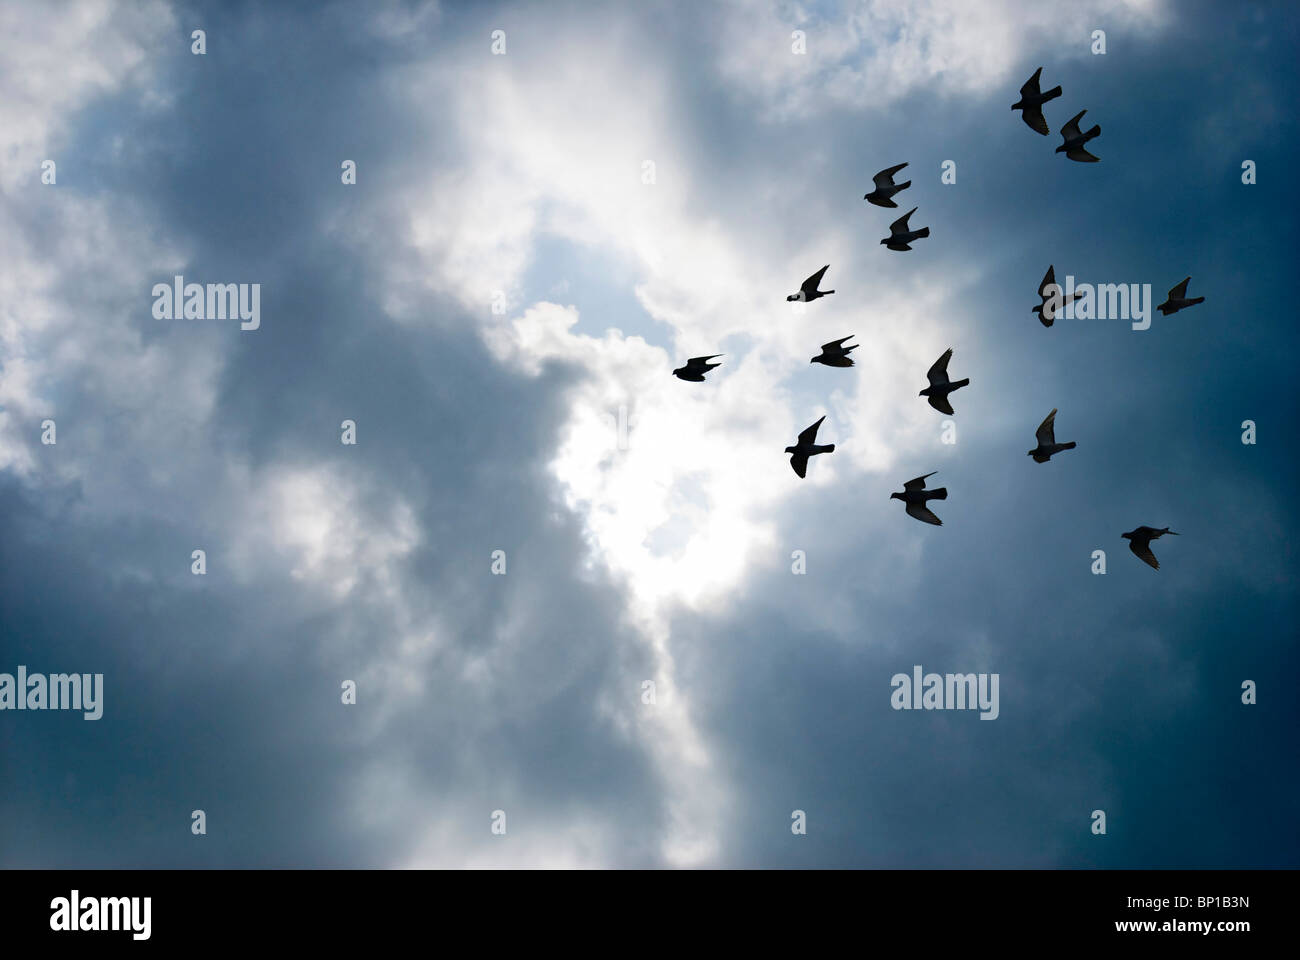 Birds flying breakthrough gray clouds Concept of fly overcome. - Stock Image